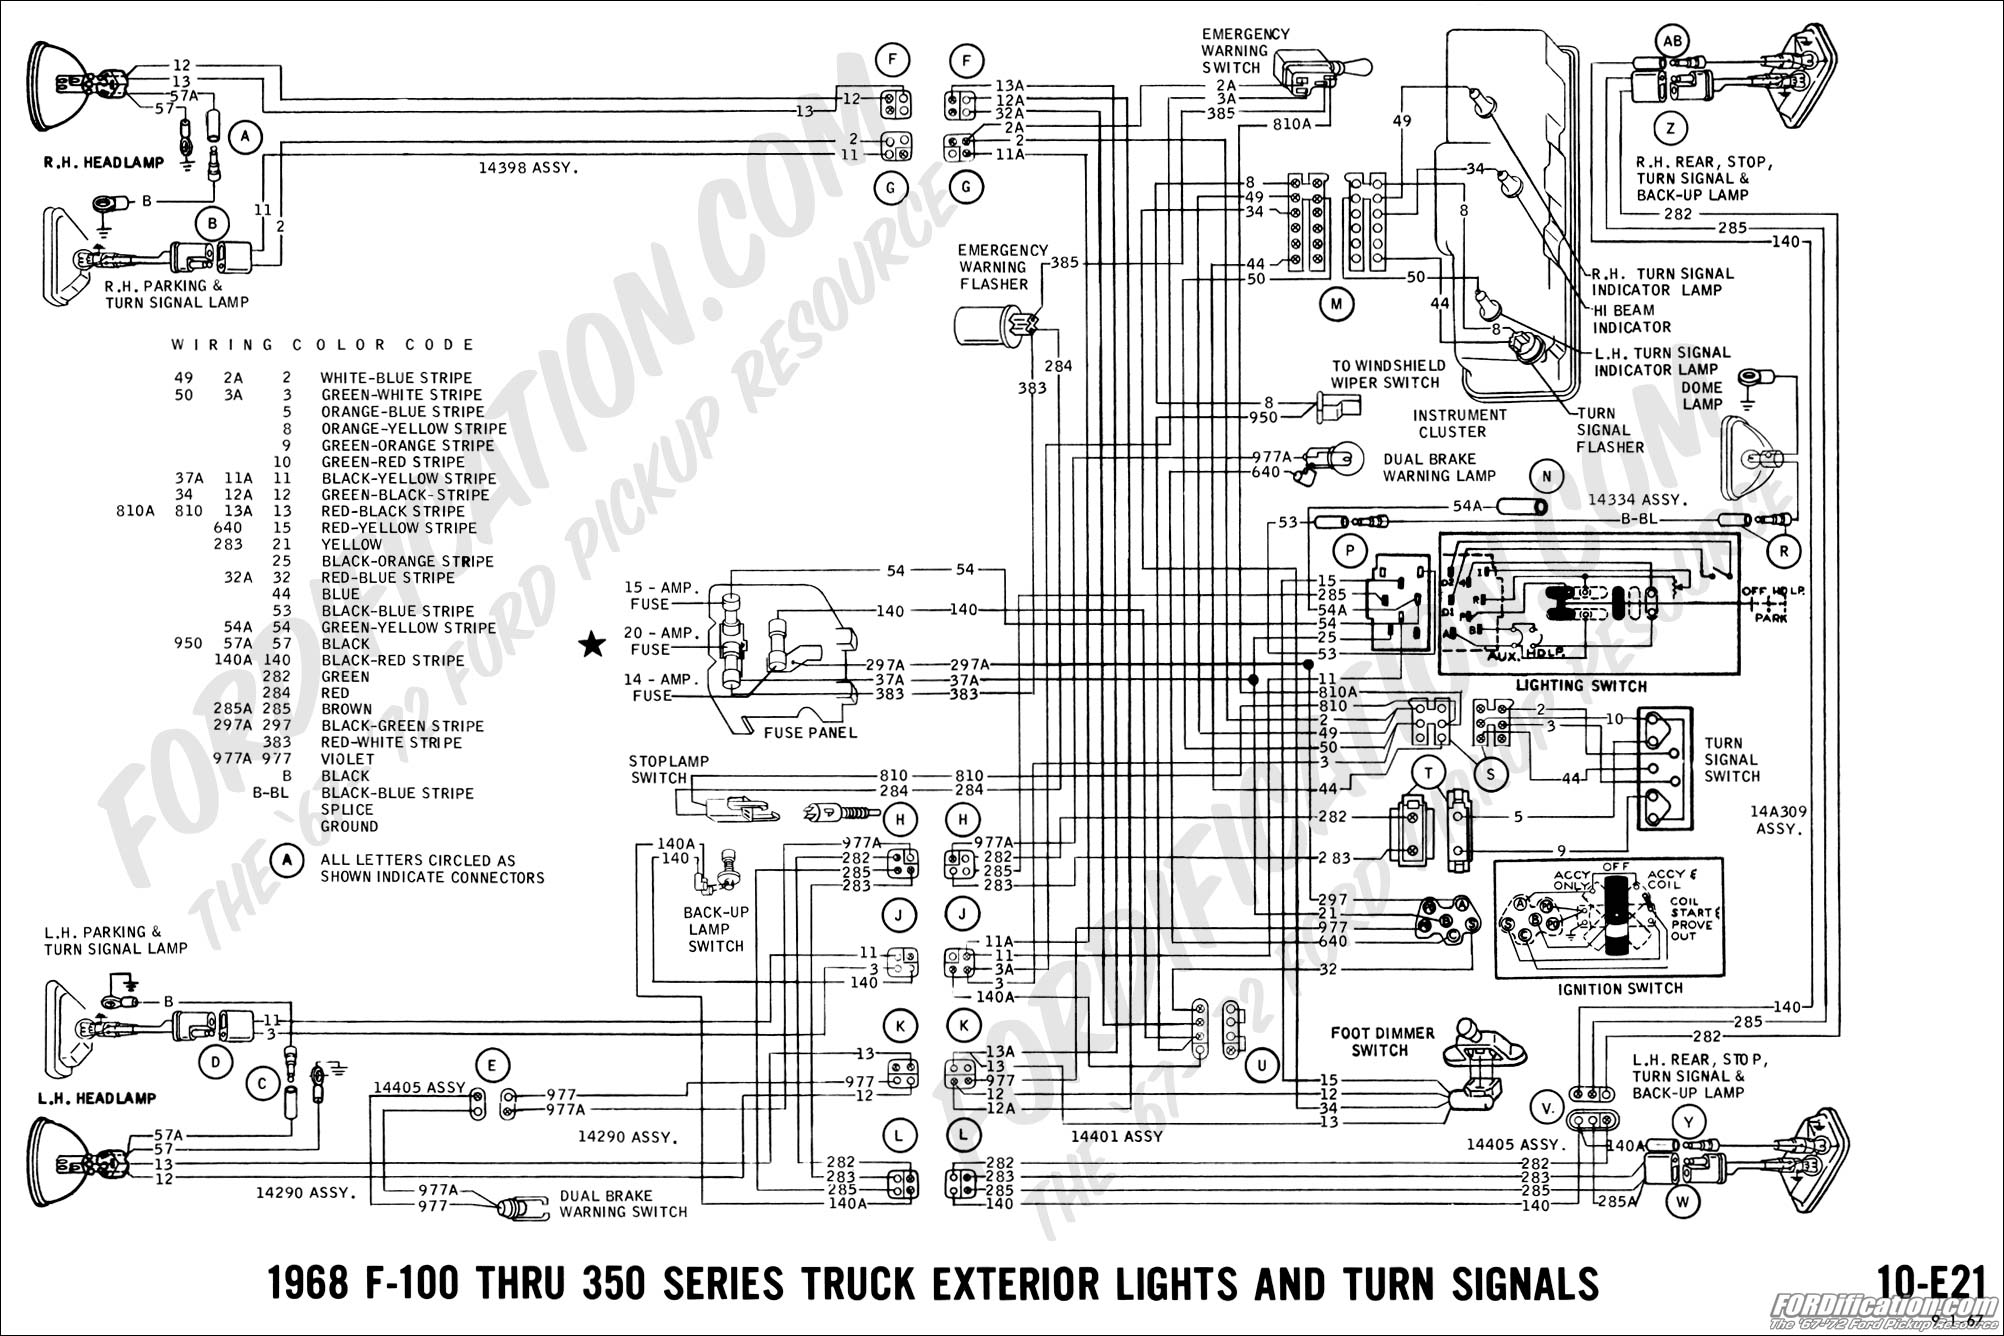 Excellent Ford Truck Technical Drawings And Schematics Section H Wiring Wiring Cloud Onicaxeromohammedshrineorg